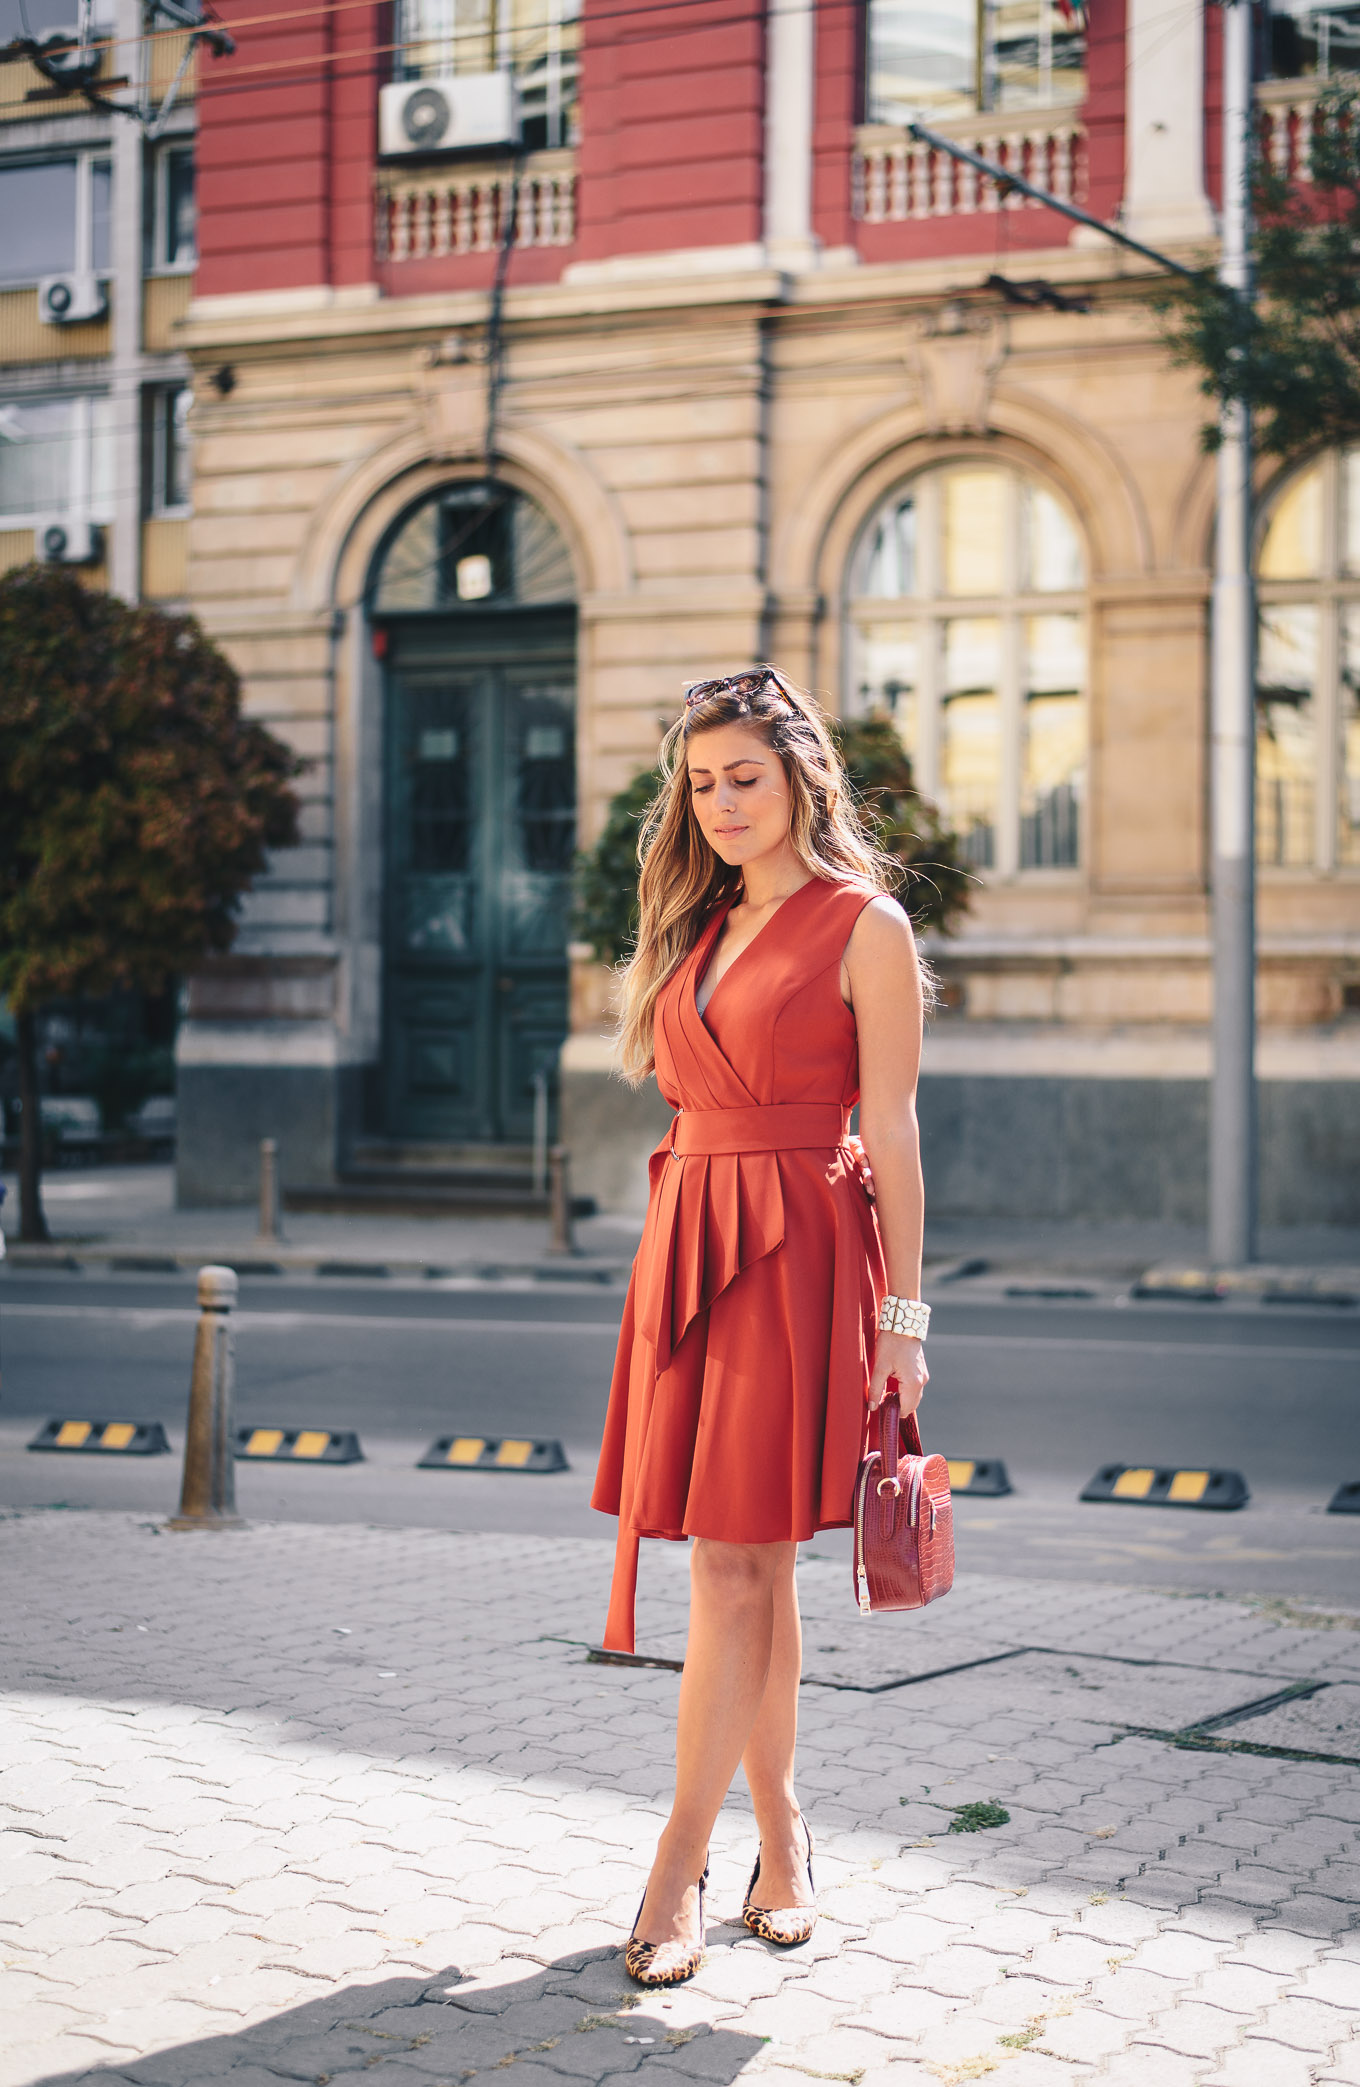 wearing pop of red dress